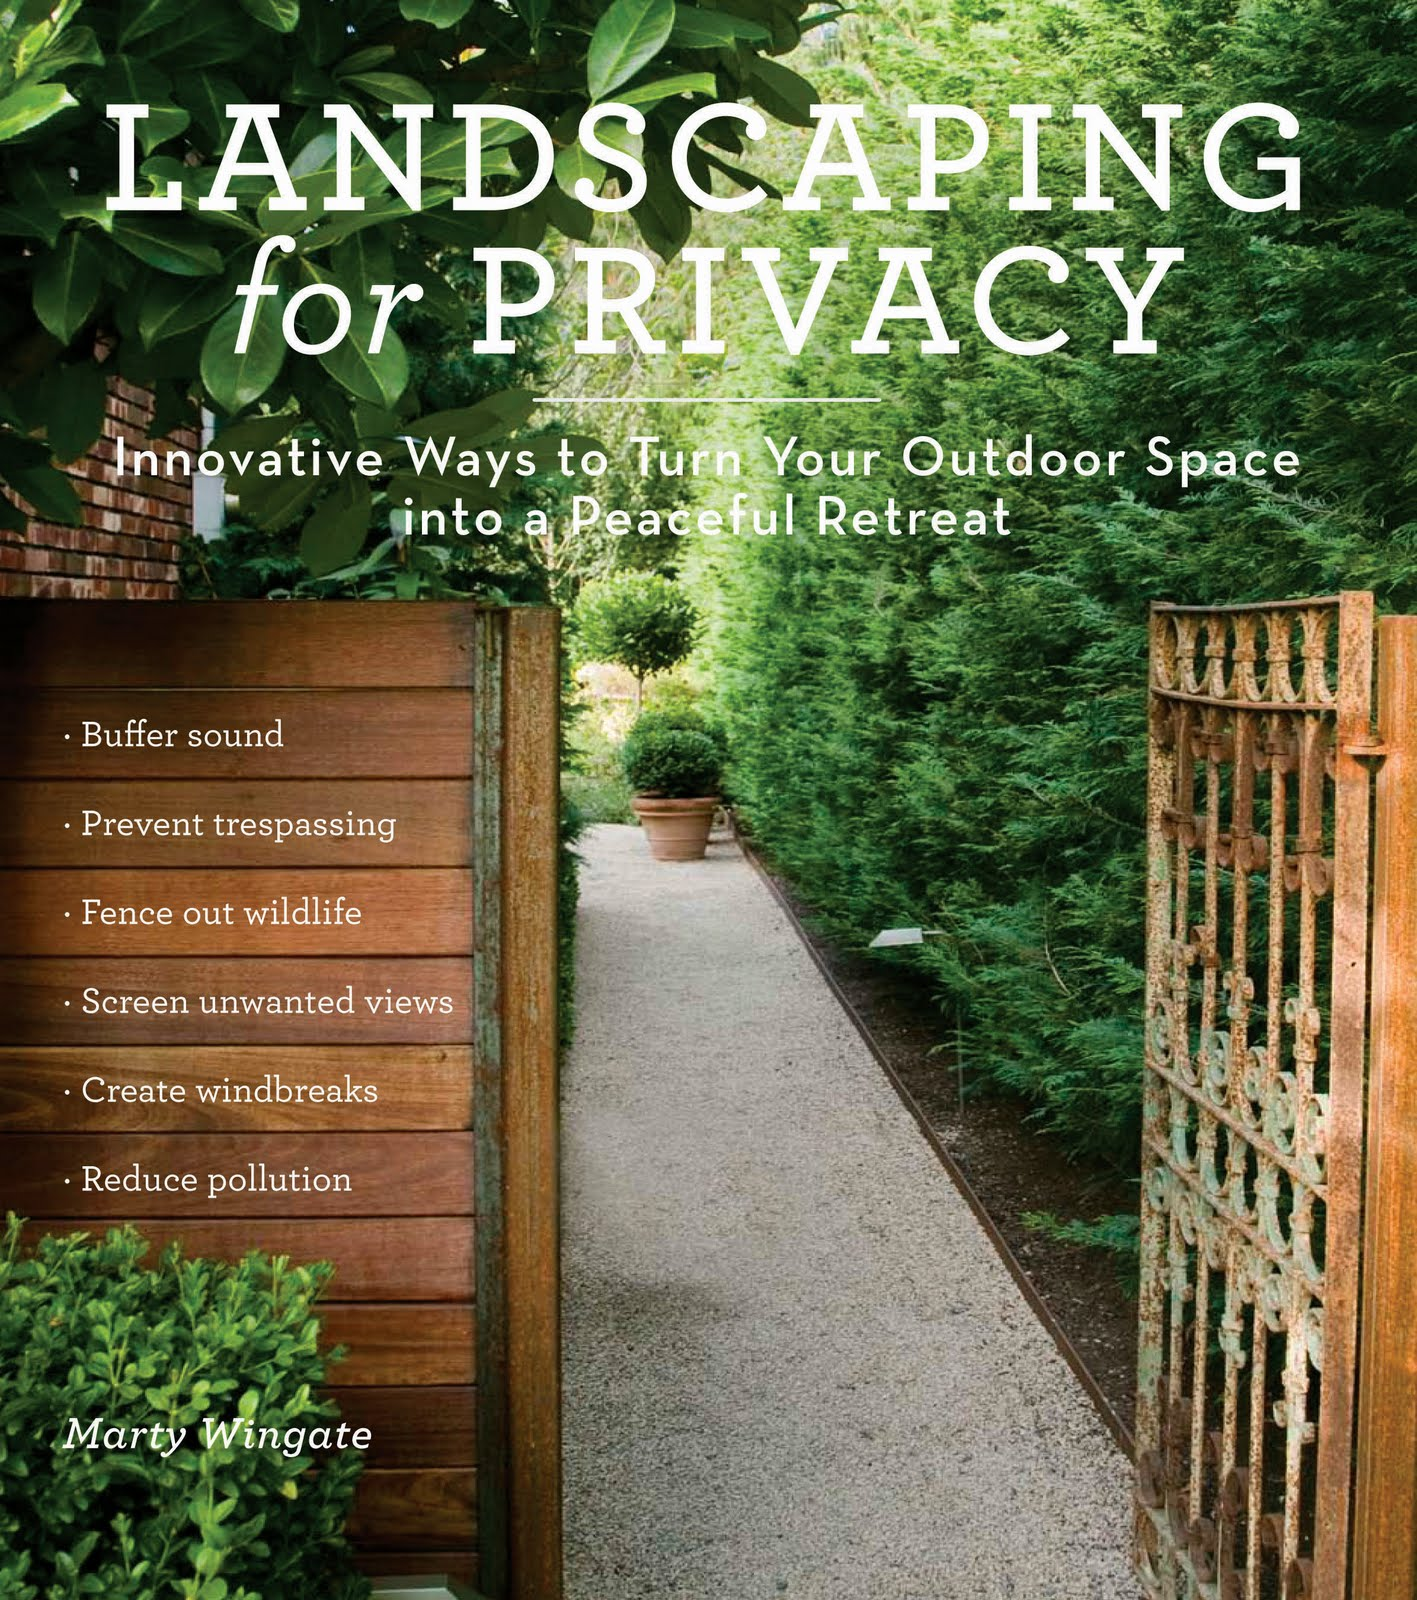 Good Trees For My Backyard : danger garden Landscaping for Privacy, Innovative Ways to Turn Your